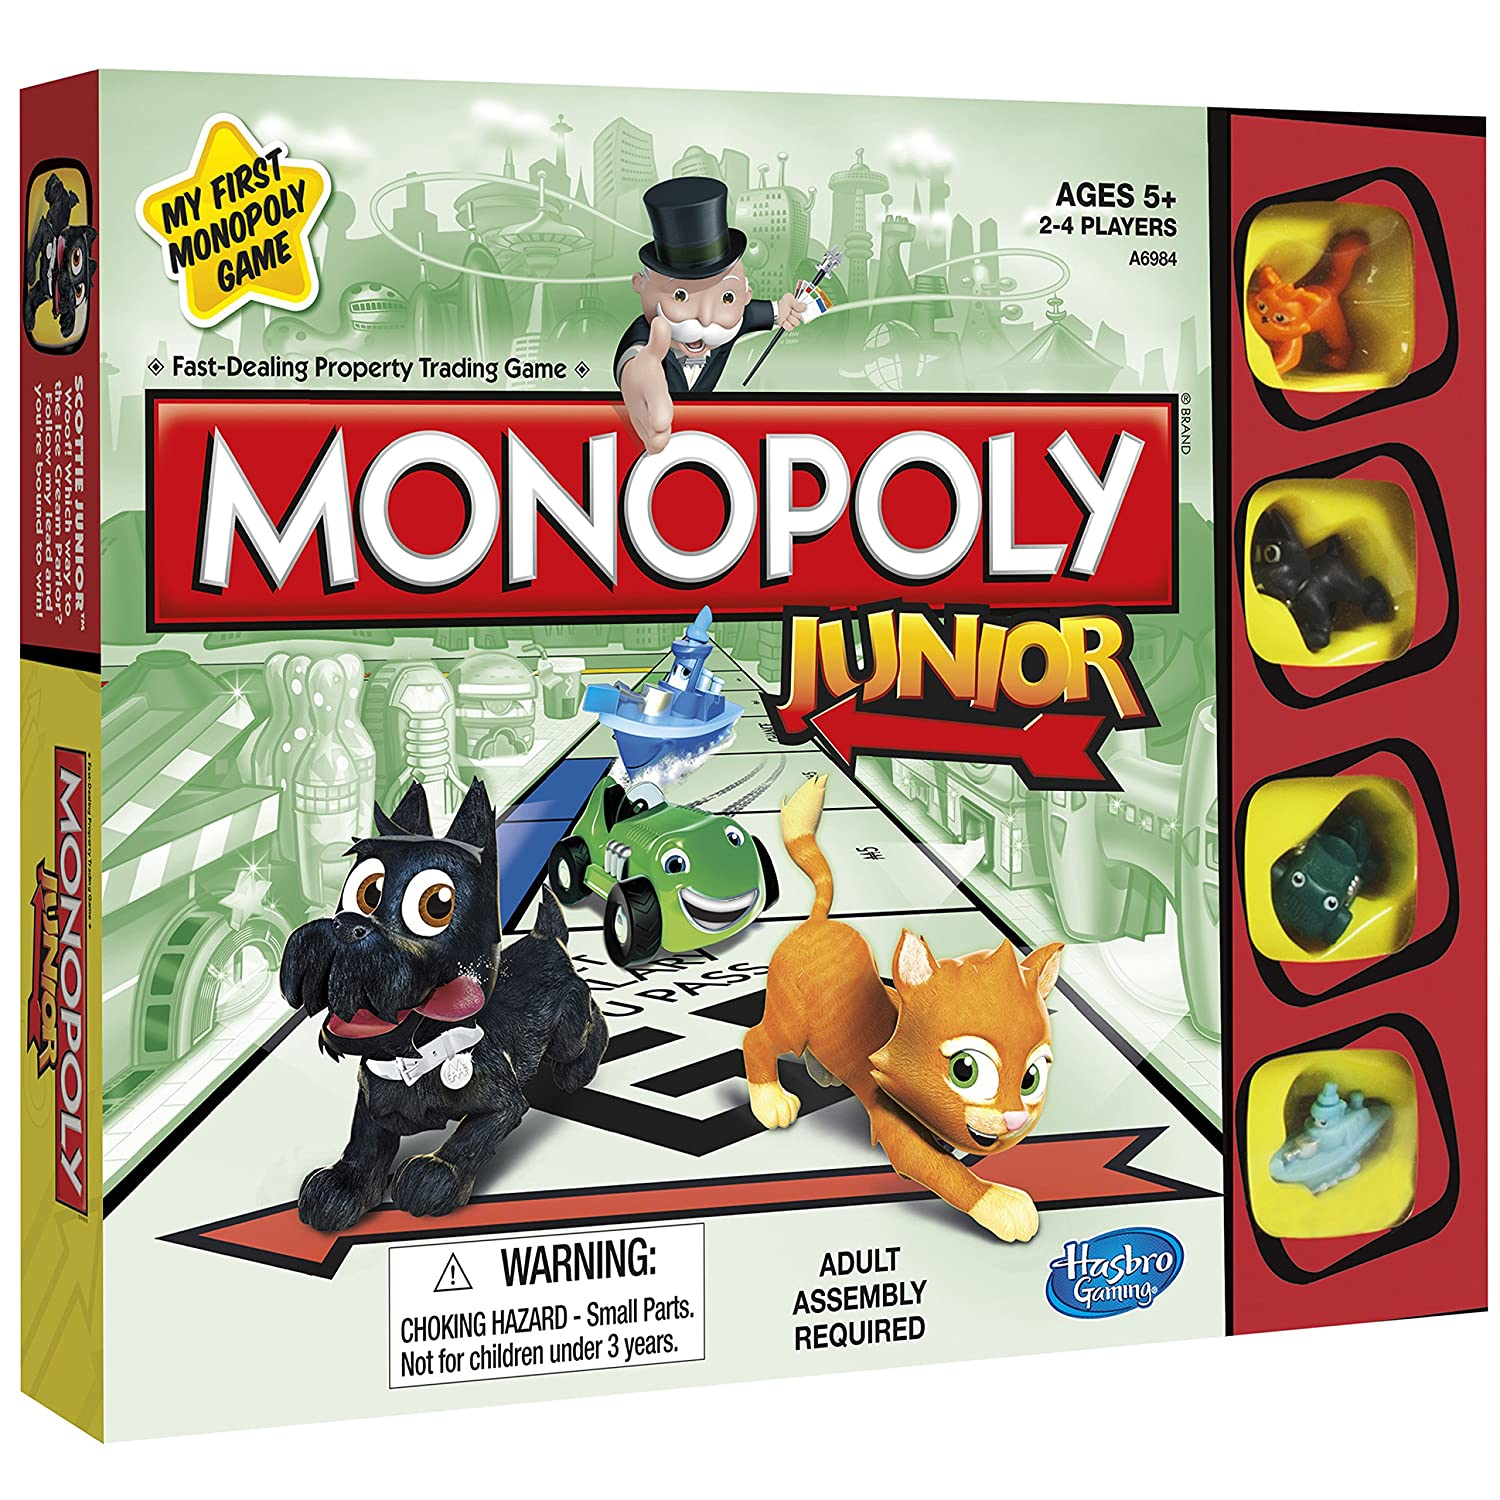 Monopoly Junior: A Kids Version of the Classic Family Game